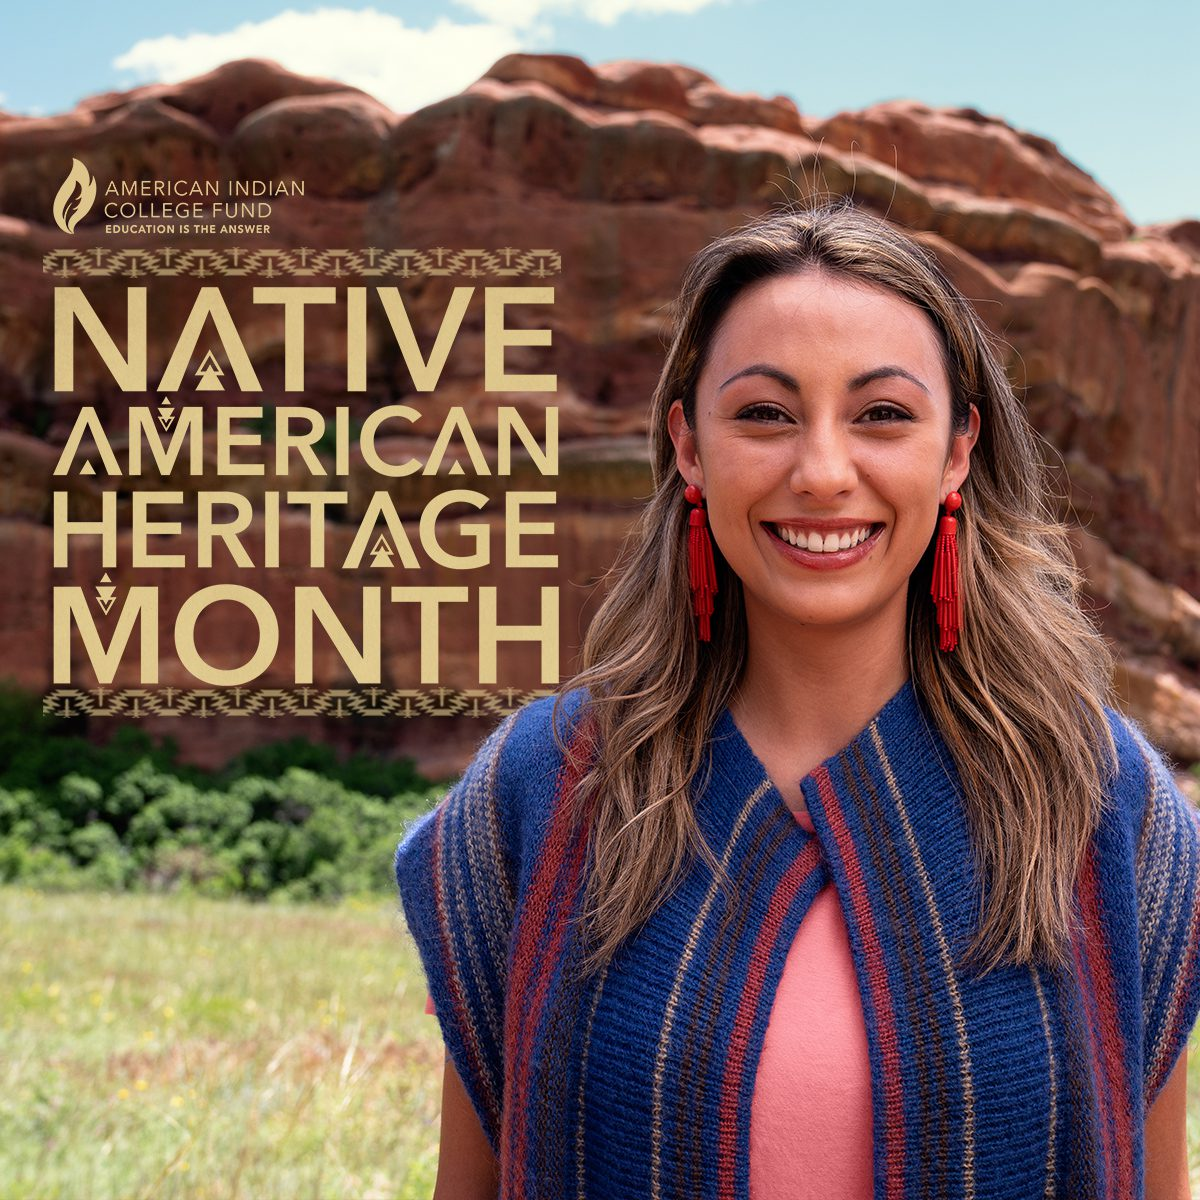 Native American Heritage Month - Share on Instagram 2